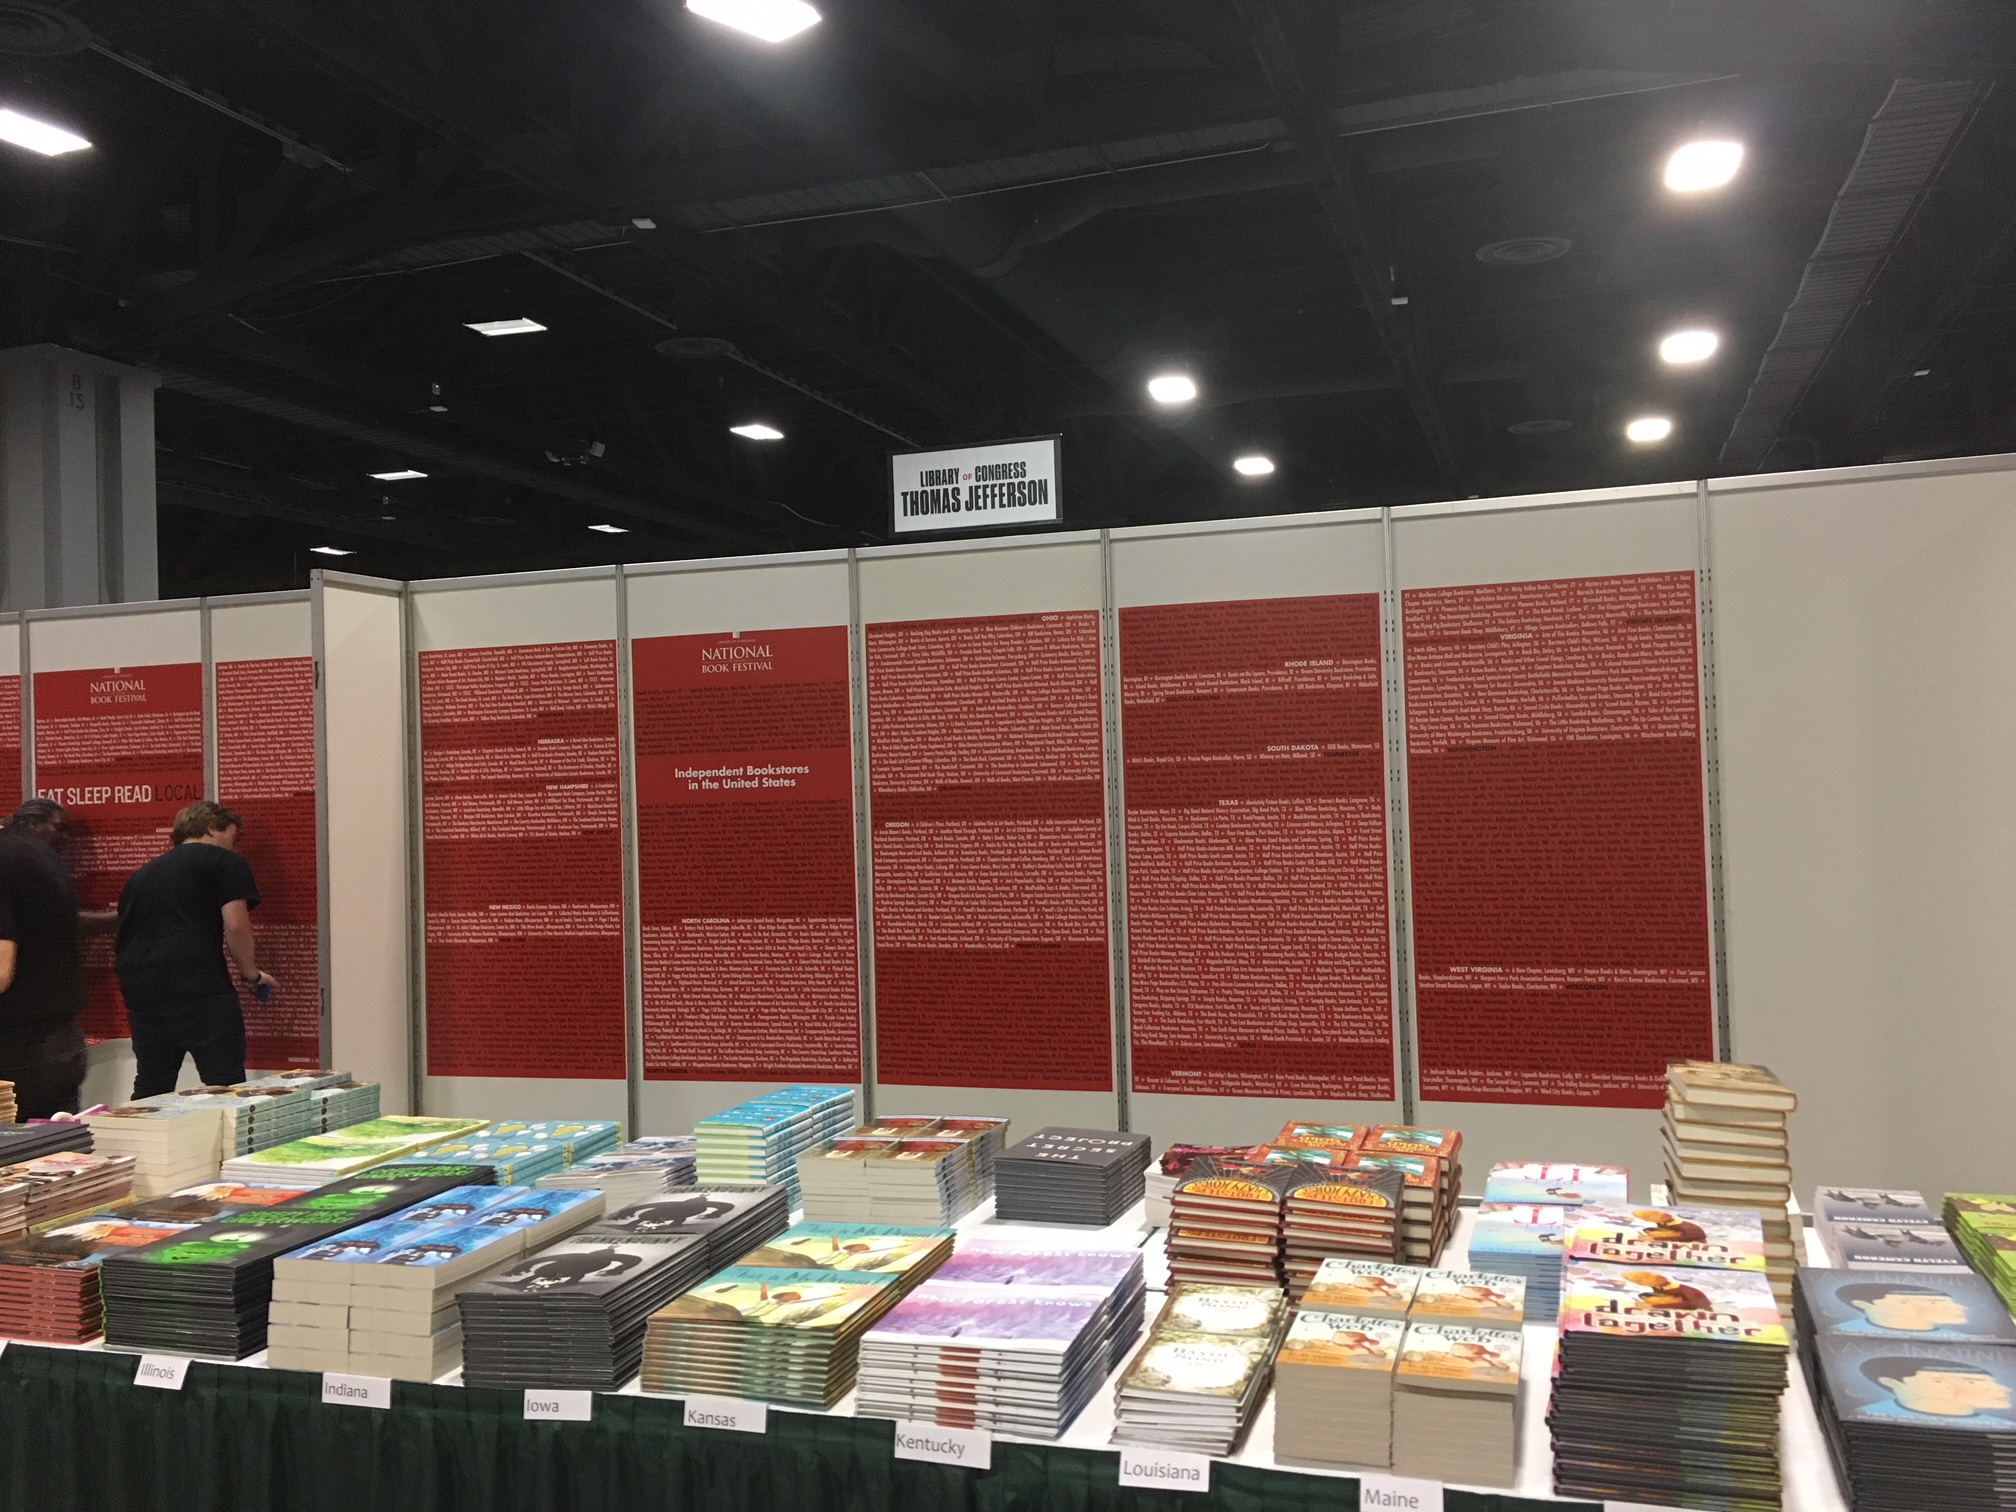 A display of books in the P&P sales area